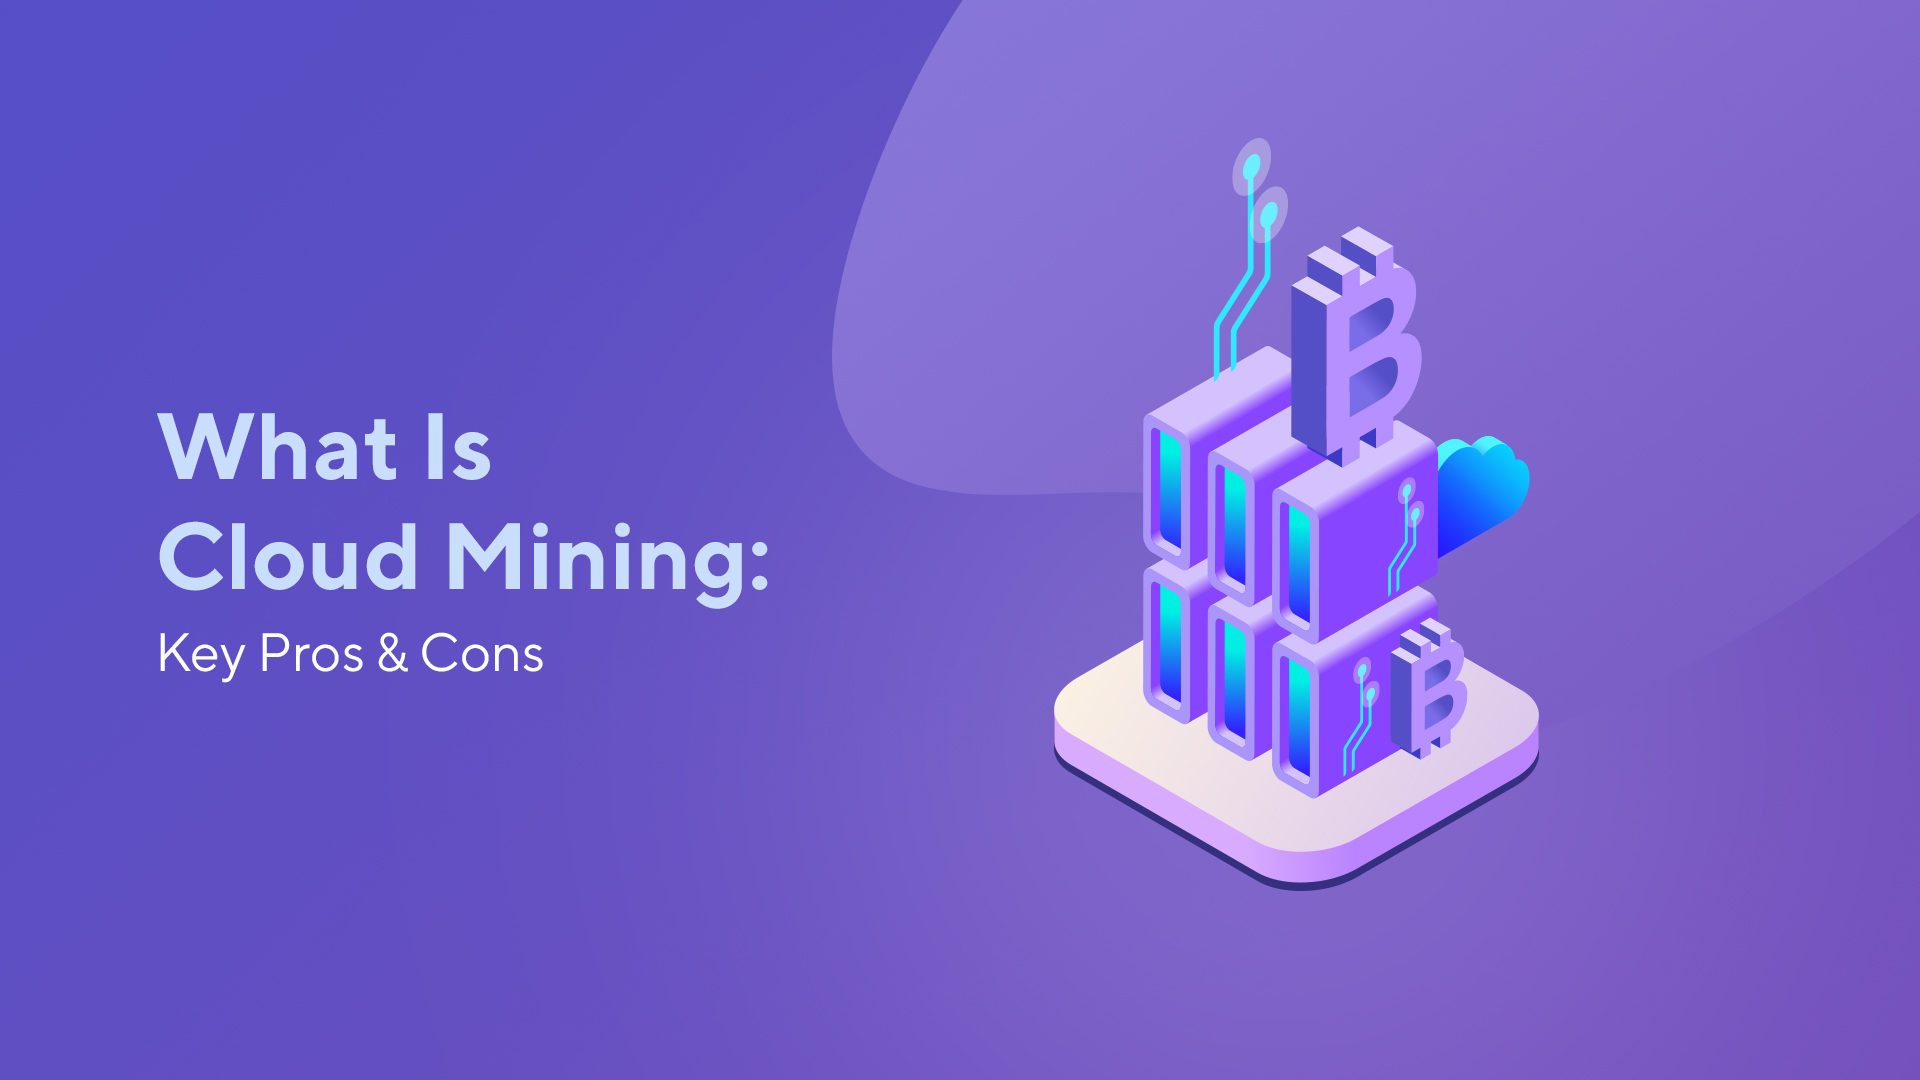 What Is Cloud Mining: Key Pros & Cons